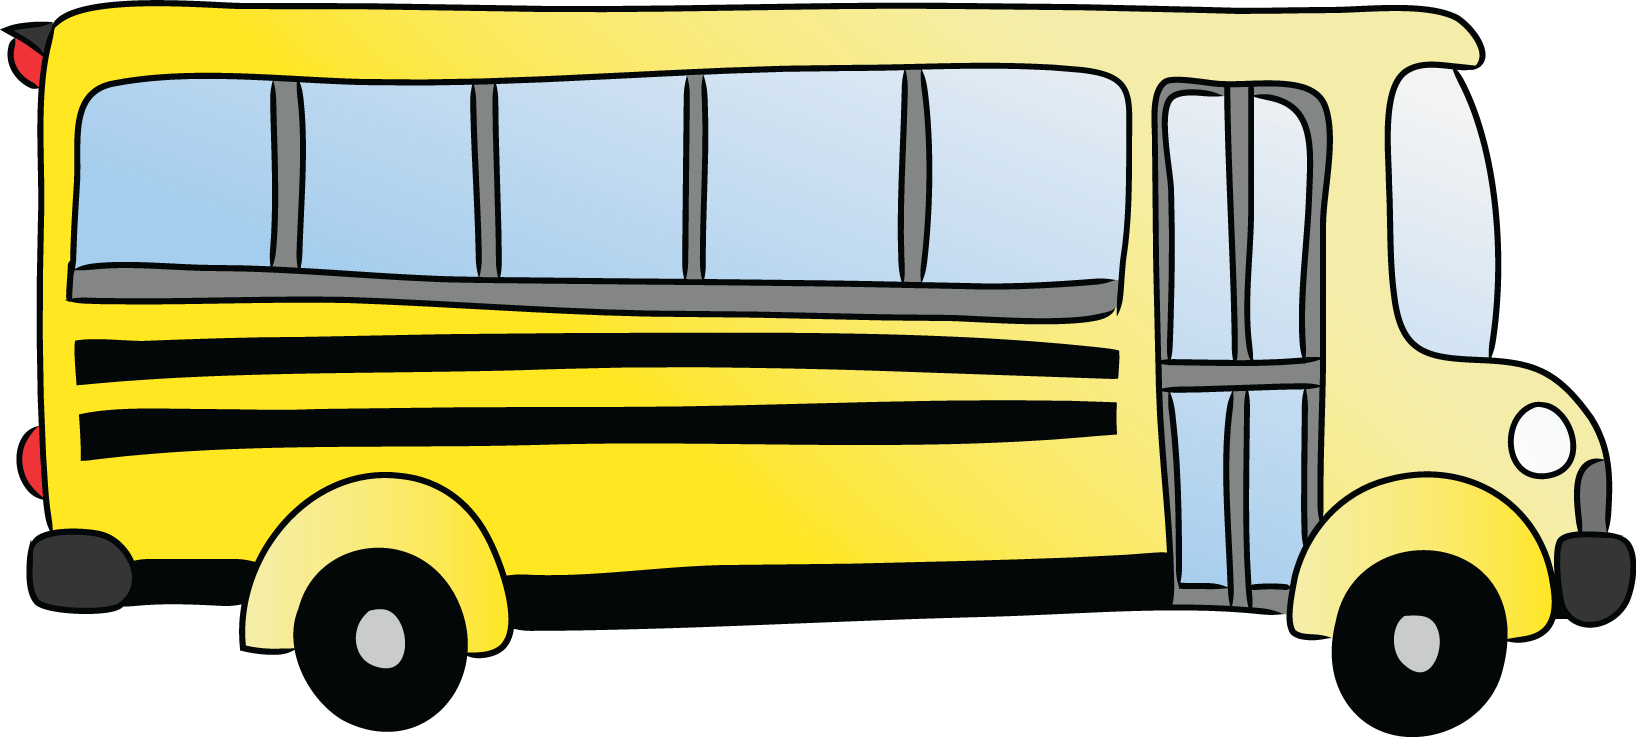 School bus flashing yellow light clipart picture freeuse download Yellow bus clipart - ClipartFest picture freeuse download